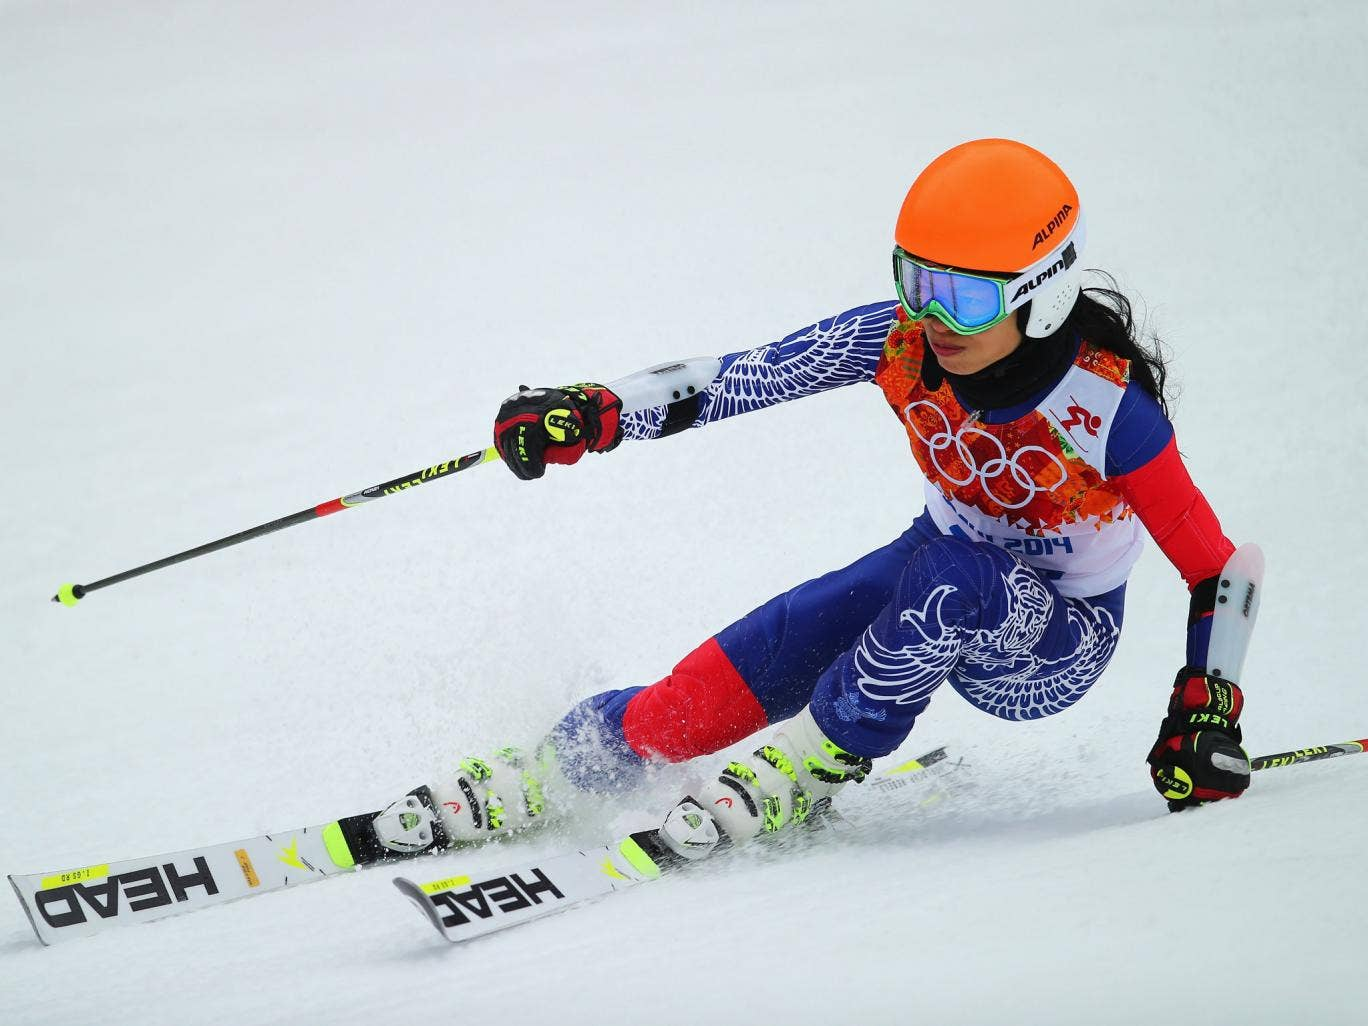 Vanessa-Mae finished 74th after her first run in the women's giant slalom